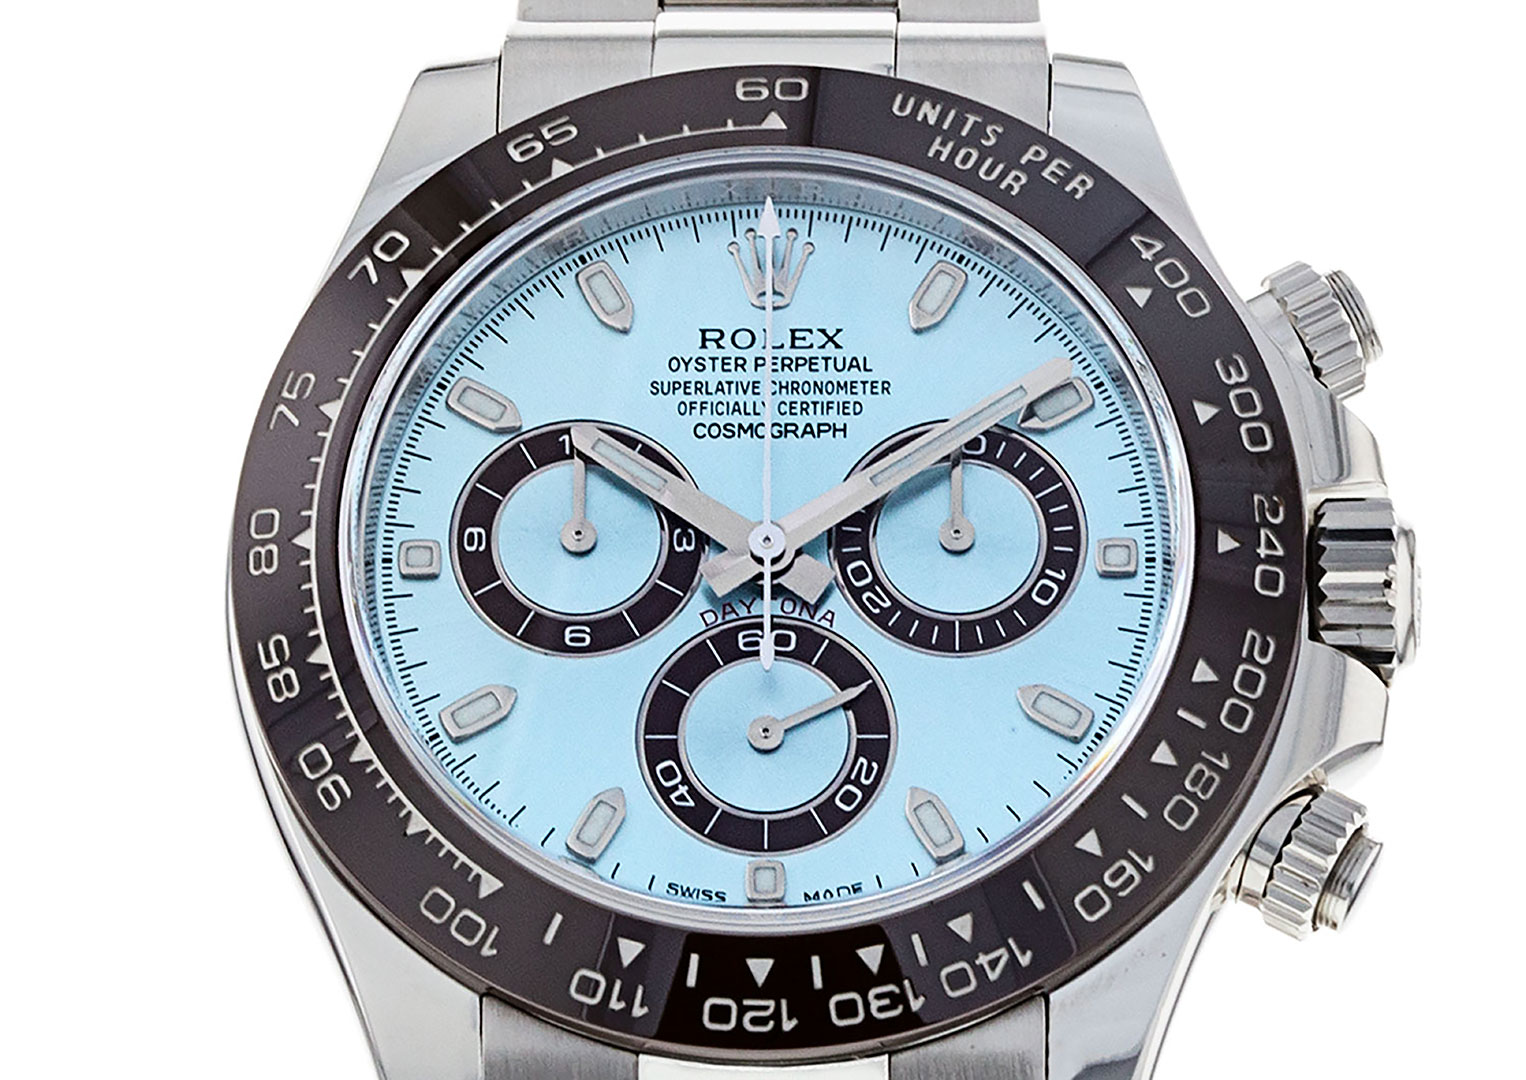 The Cosmograph Daytona finally got its own in-house movement in 2000.